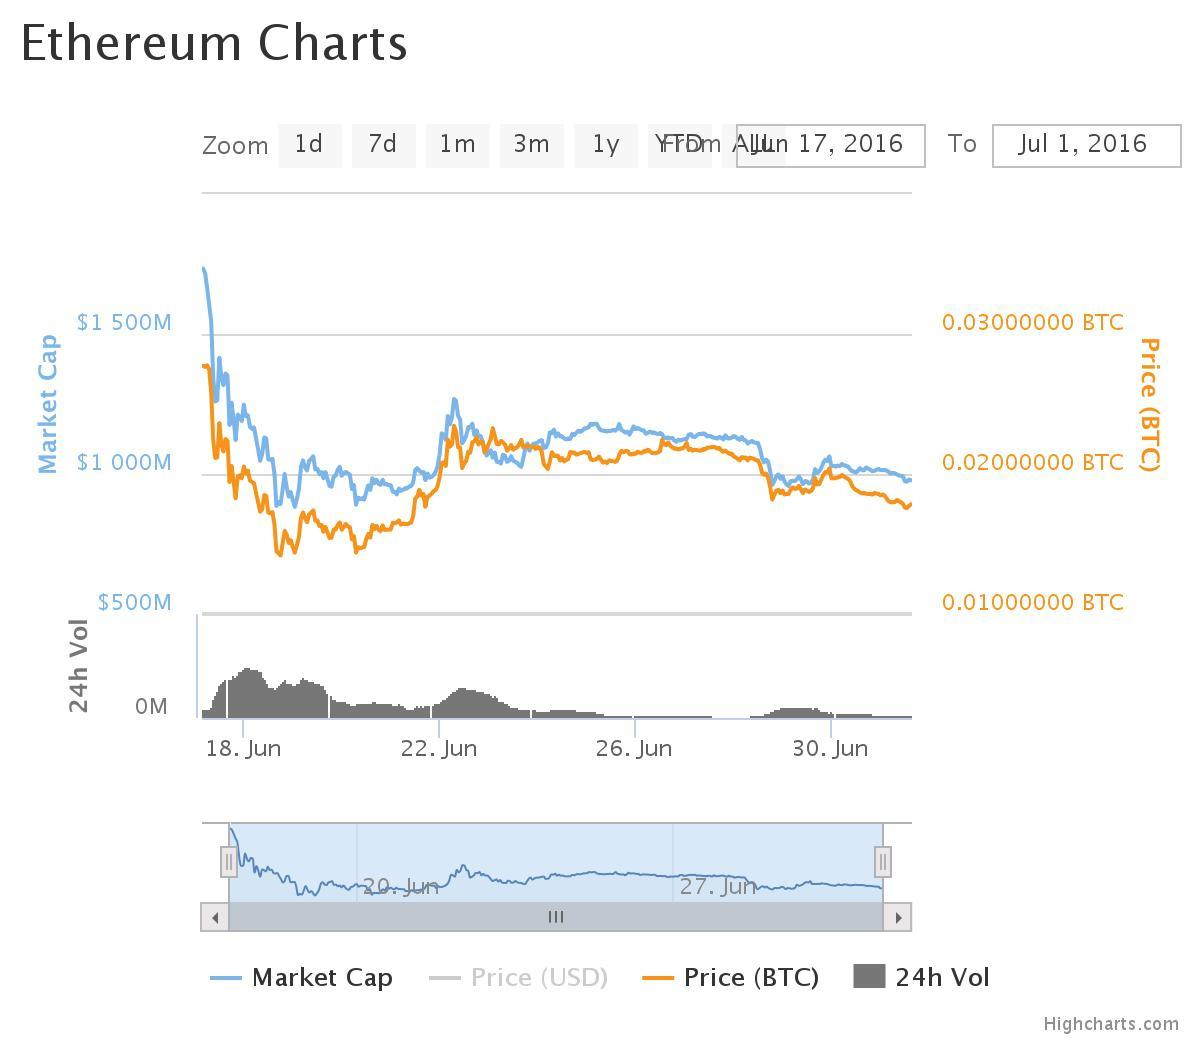 The big drop was the hack, the rise is when they thought they'd solved it, and now we're goin' down again.